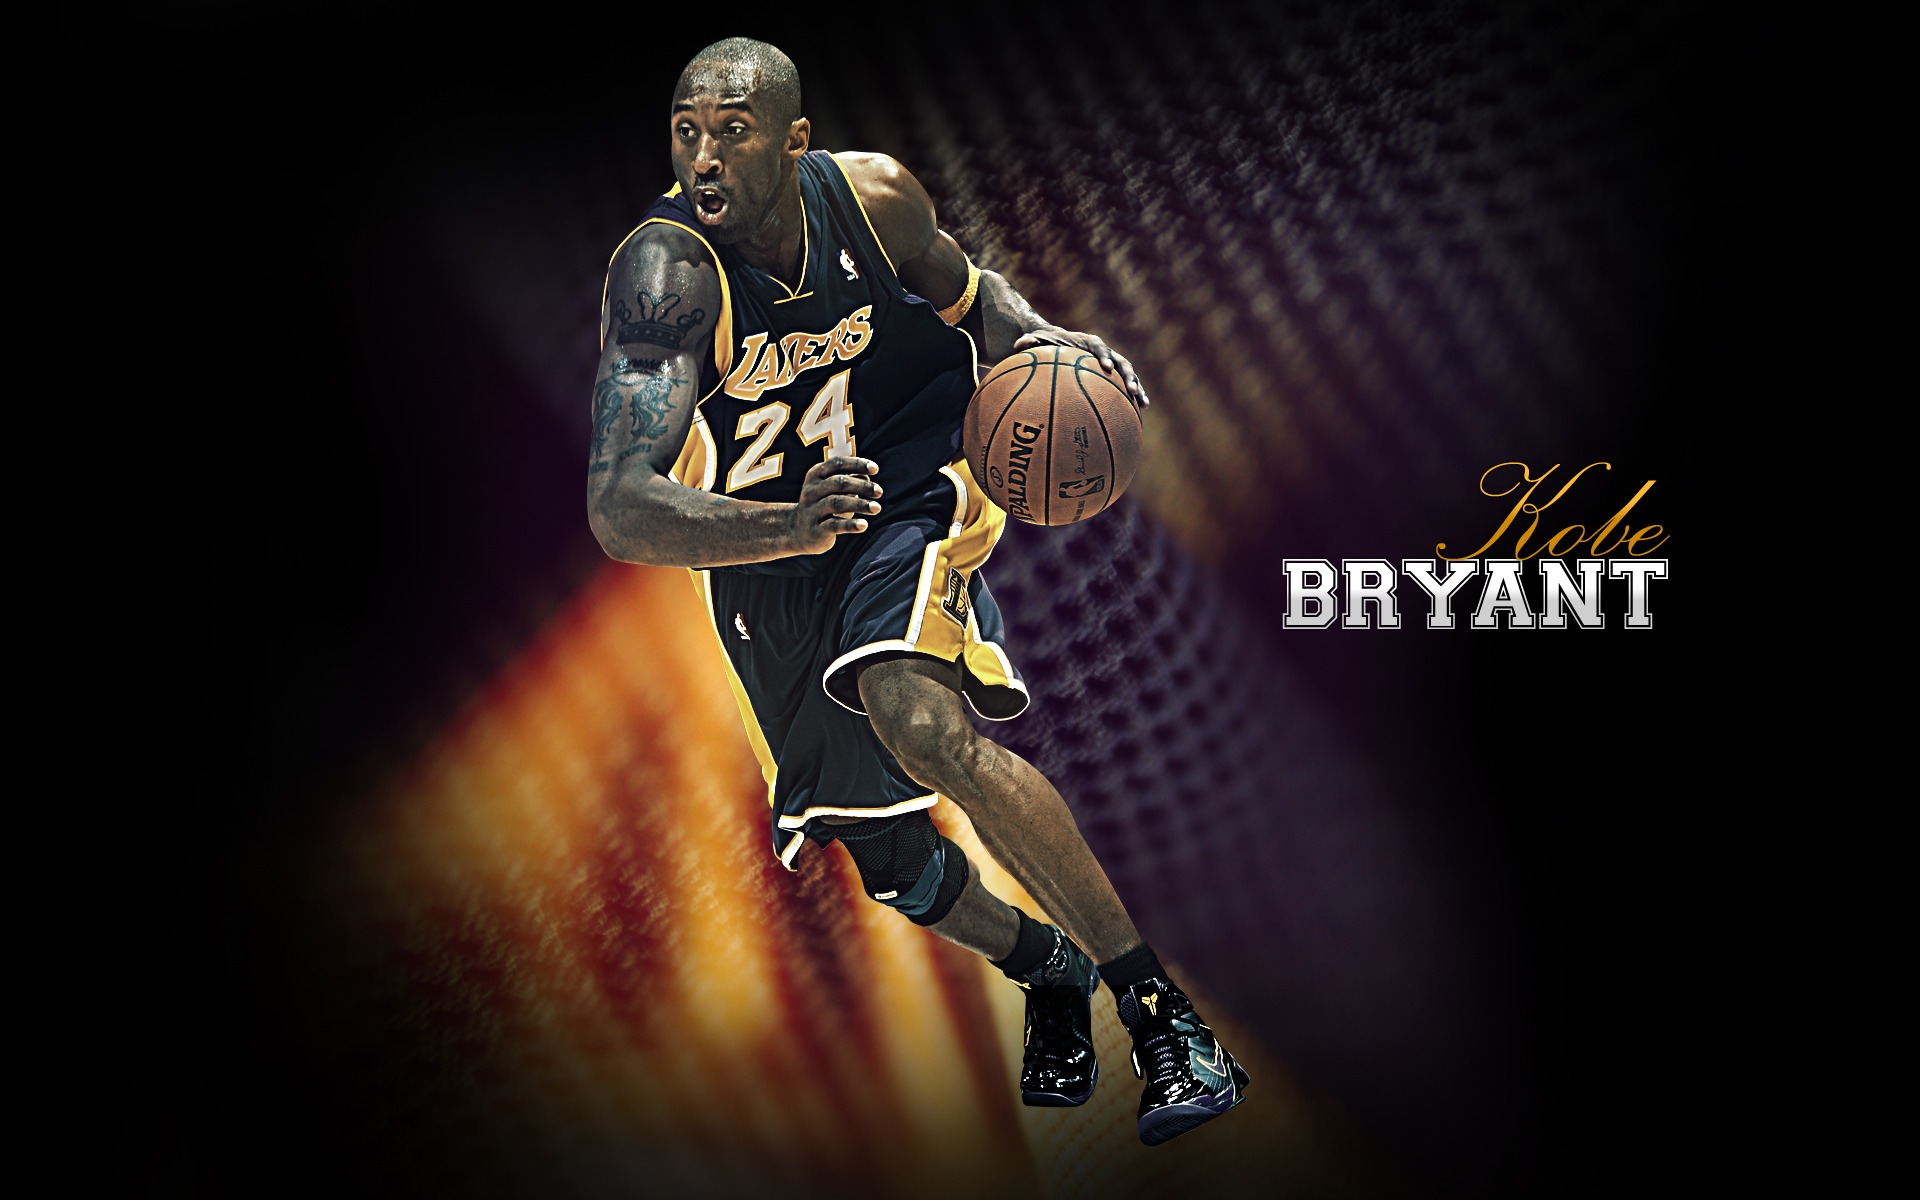 Kobe Bryant LA Lakers NBA wallpapers.